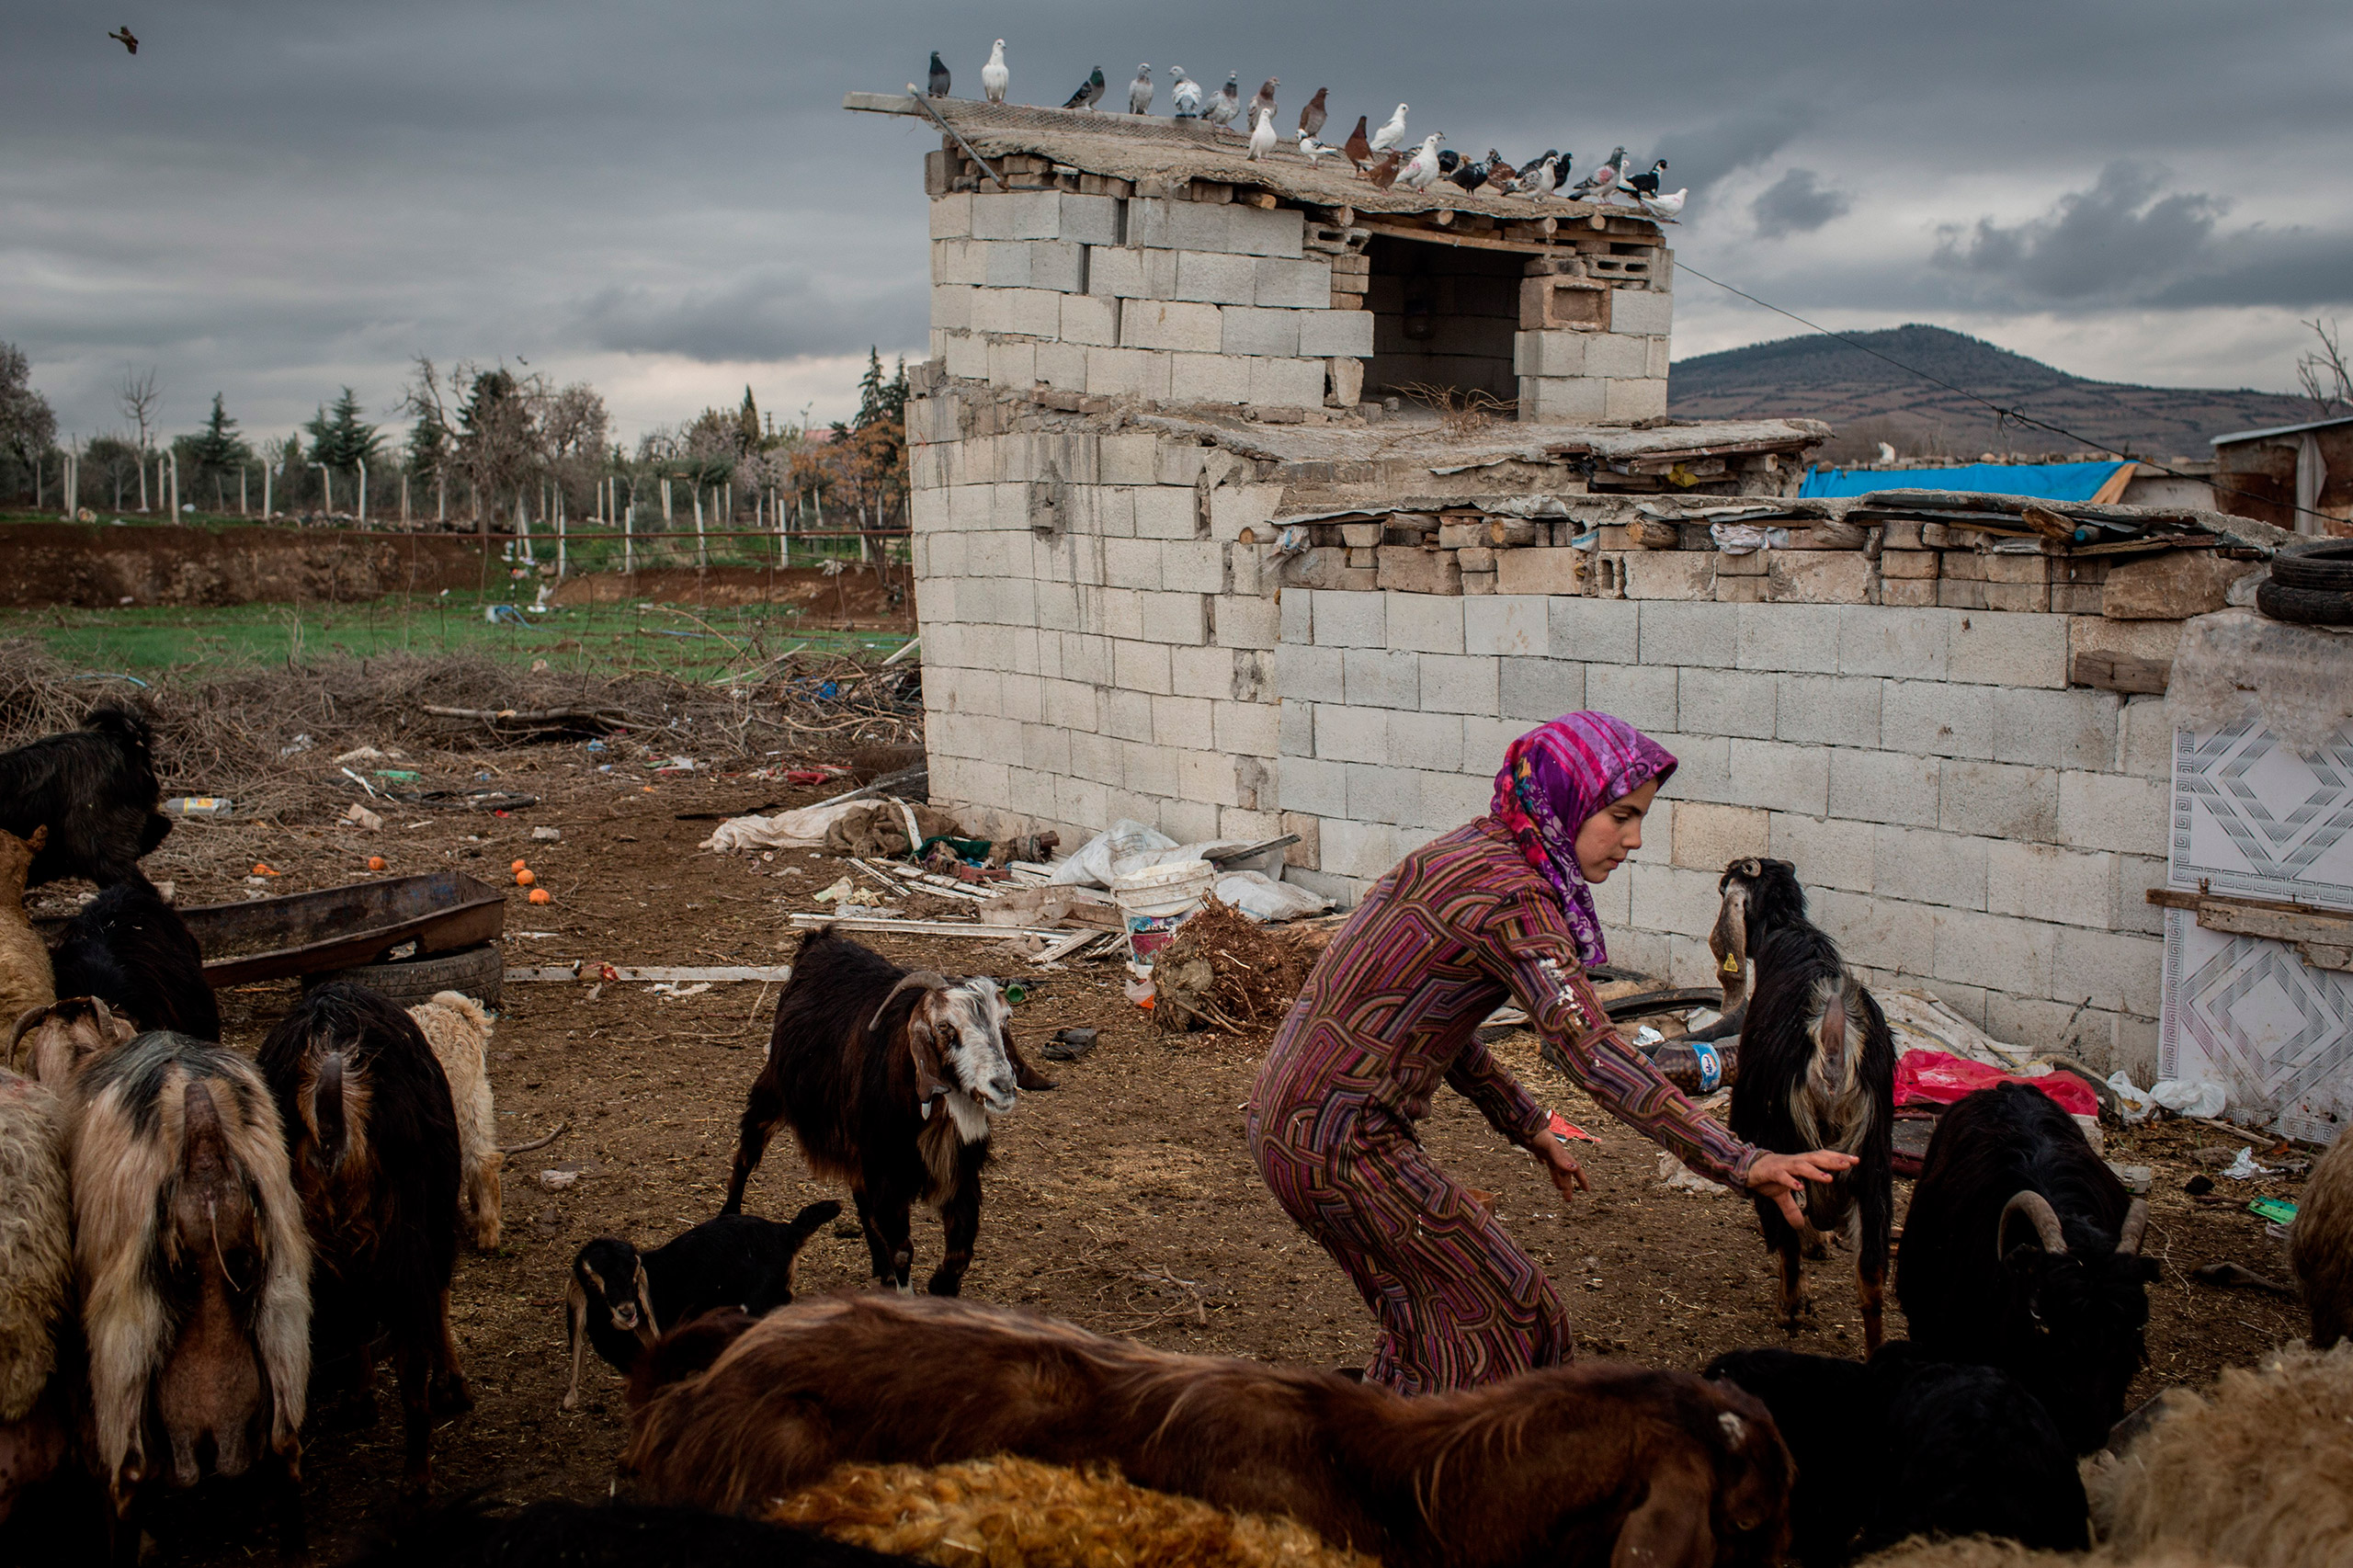 Yasmin, a Syrian refugee, tries to catch a goat during her work at a farm in Kilis, Turkey, March 3, 2016.